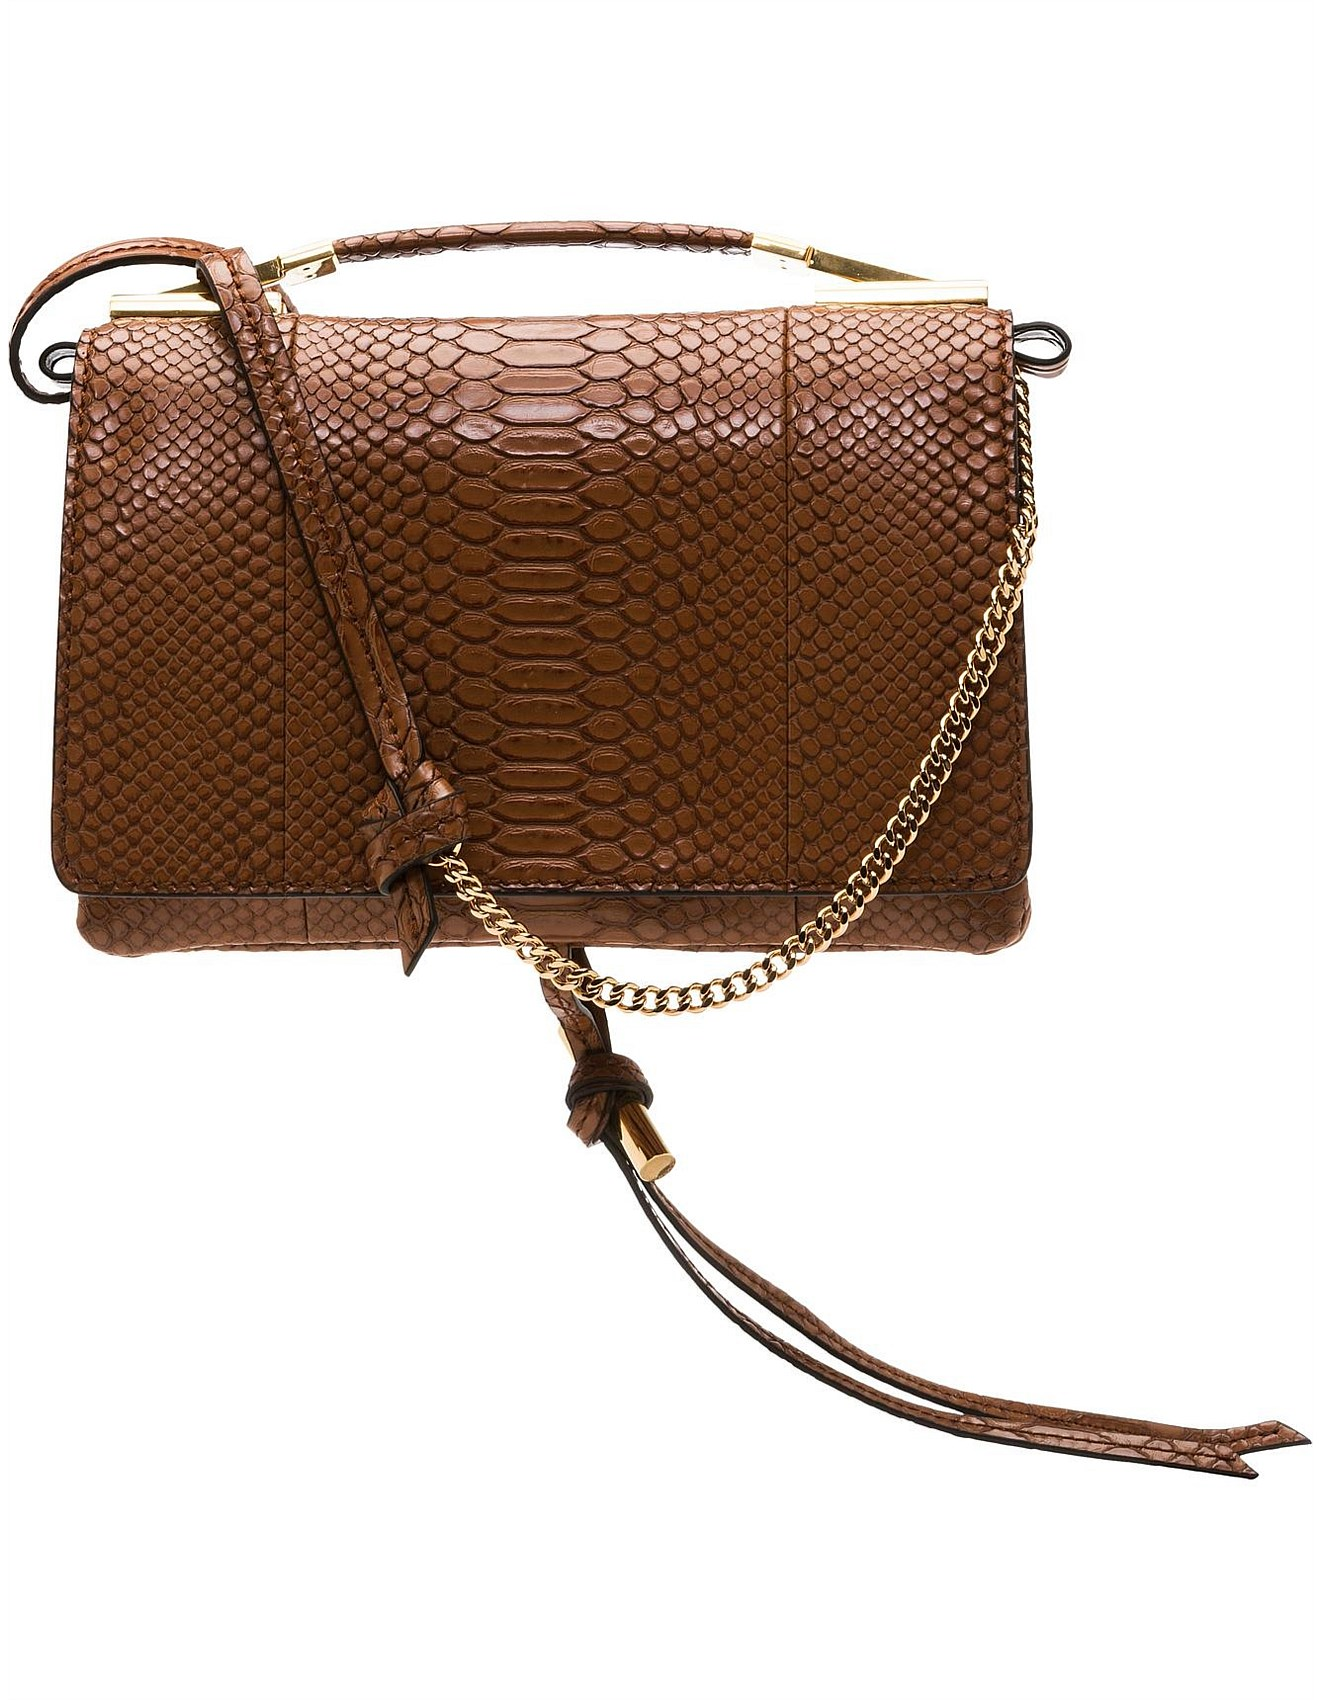 ad8d65792c36 Small Shoulder Bag Alter Snake. 1  2  3. Zoom. Stella McCartney